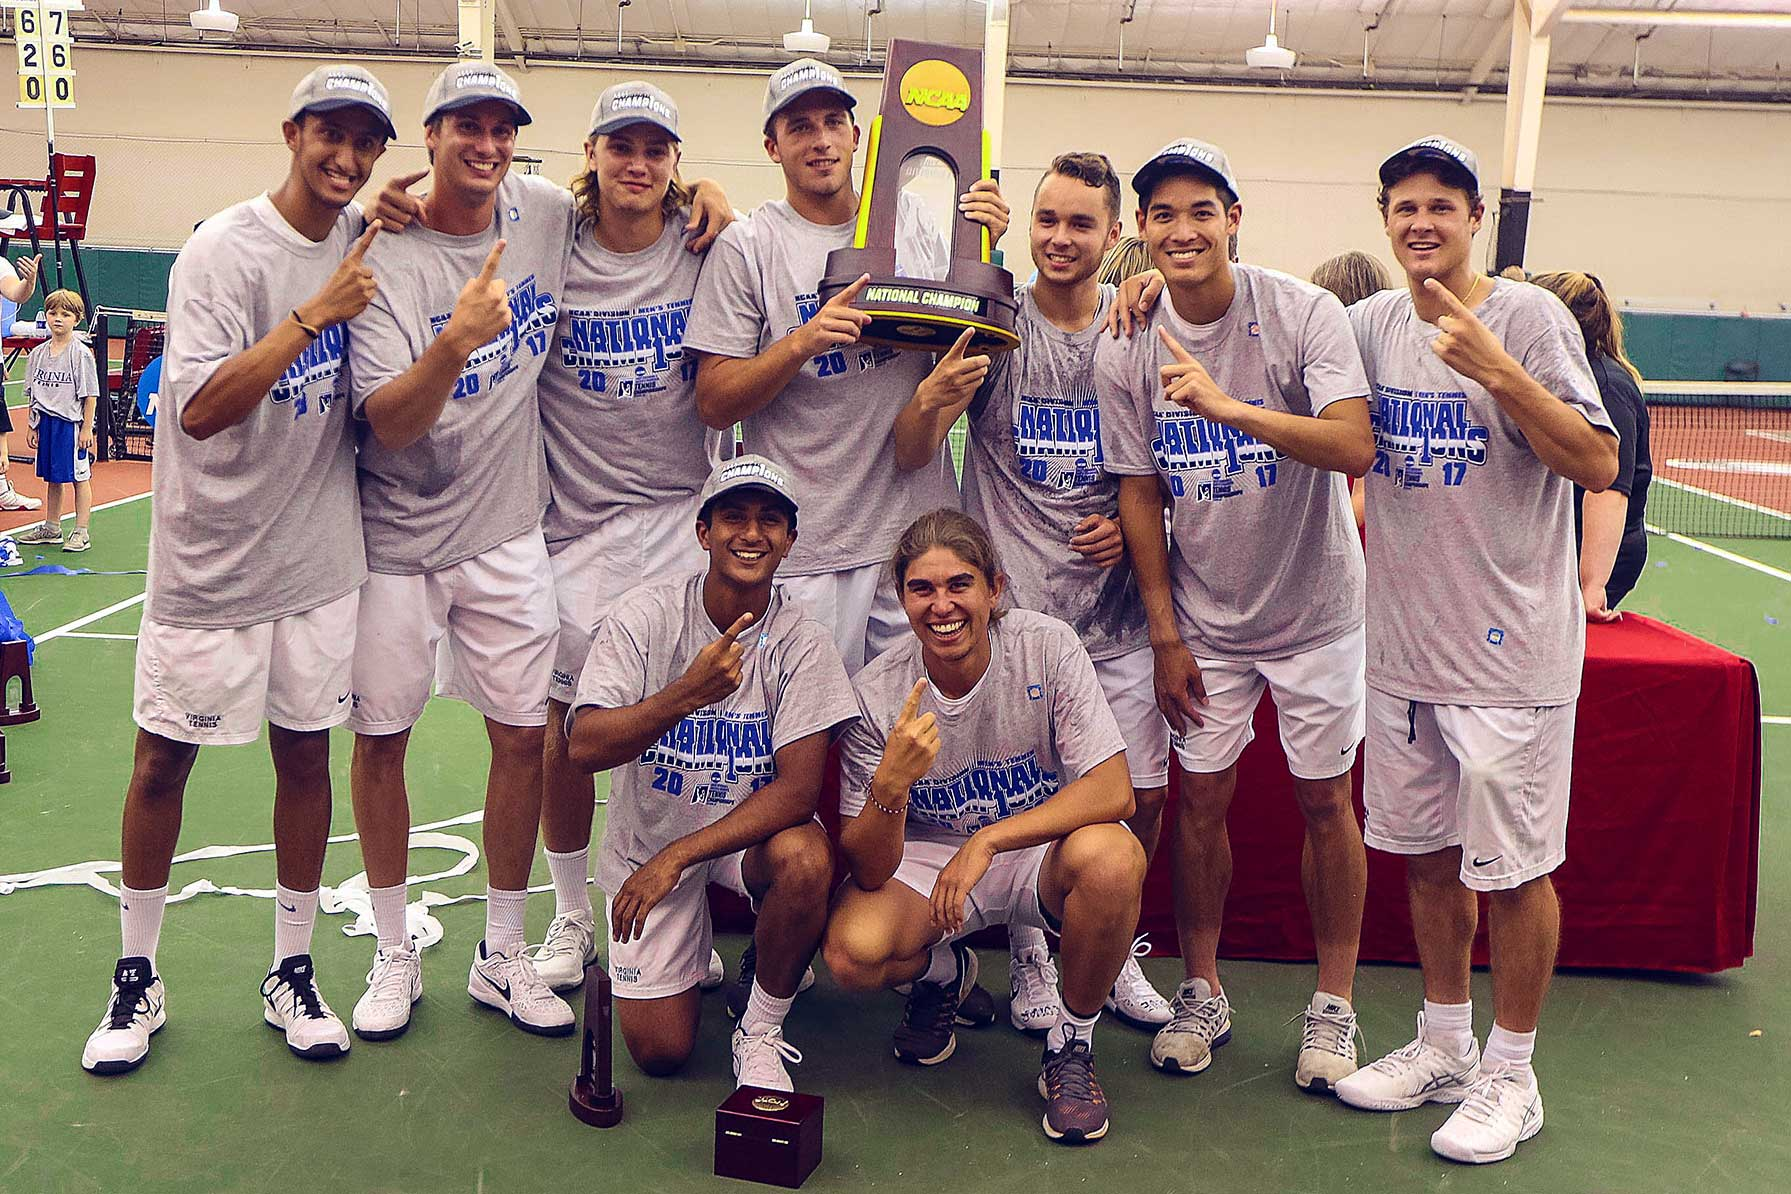 The Cavalier men's tennis's team's third straight national title catapulted UVA to No. 19 in the all-sports rankings. (UVA Athletics photo)